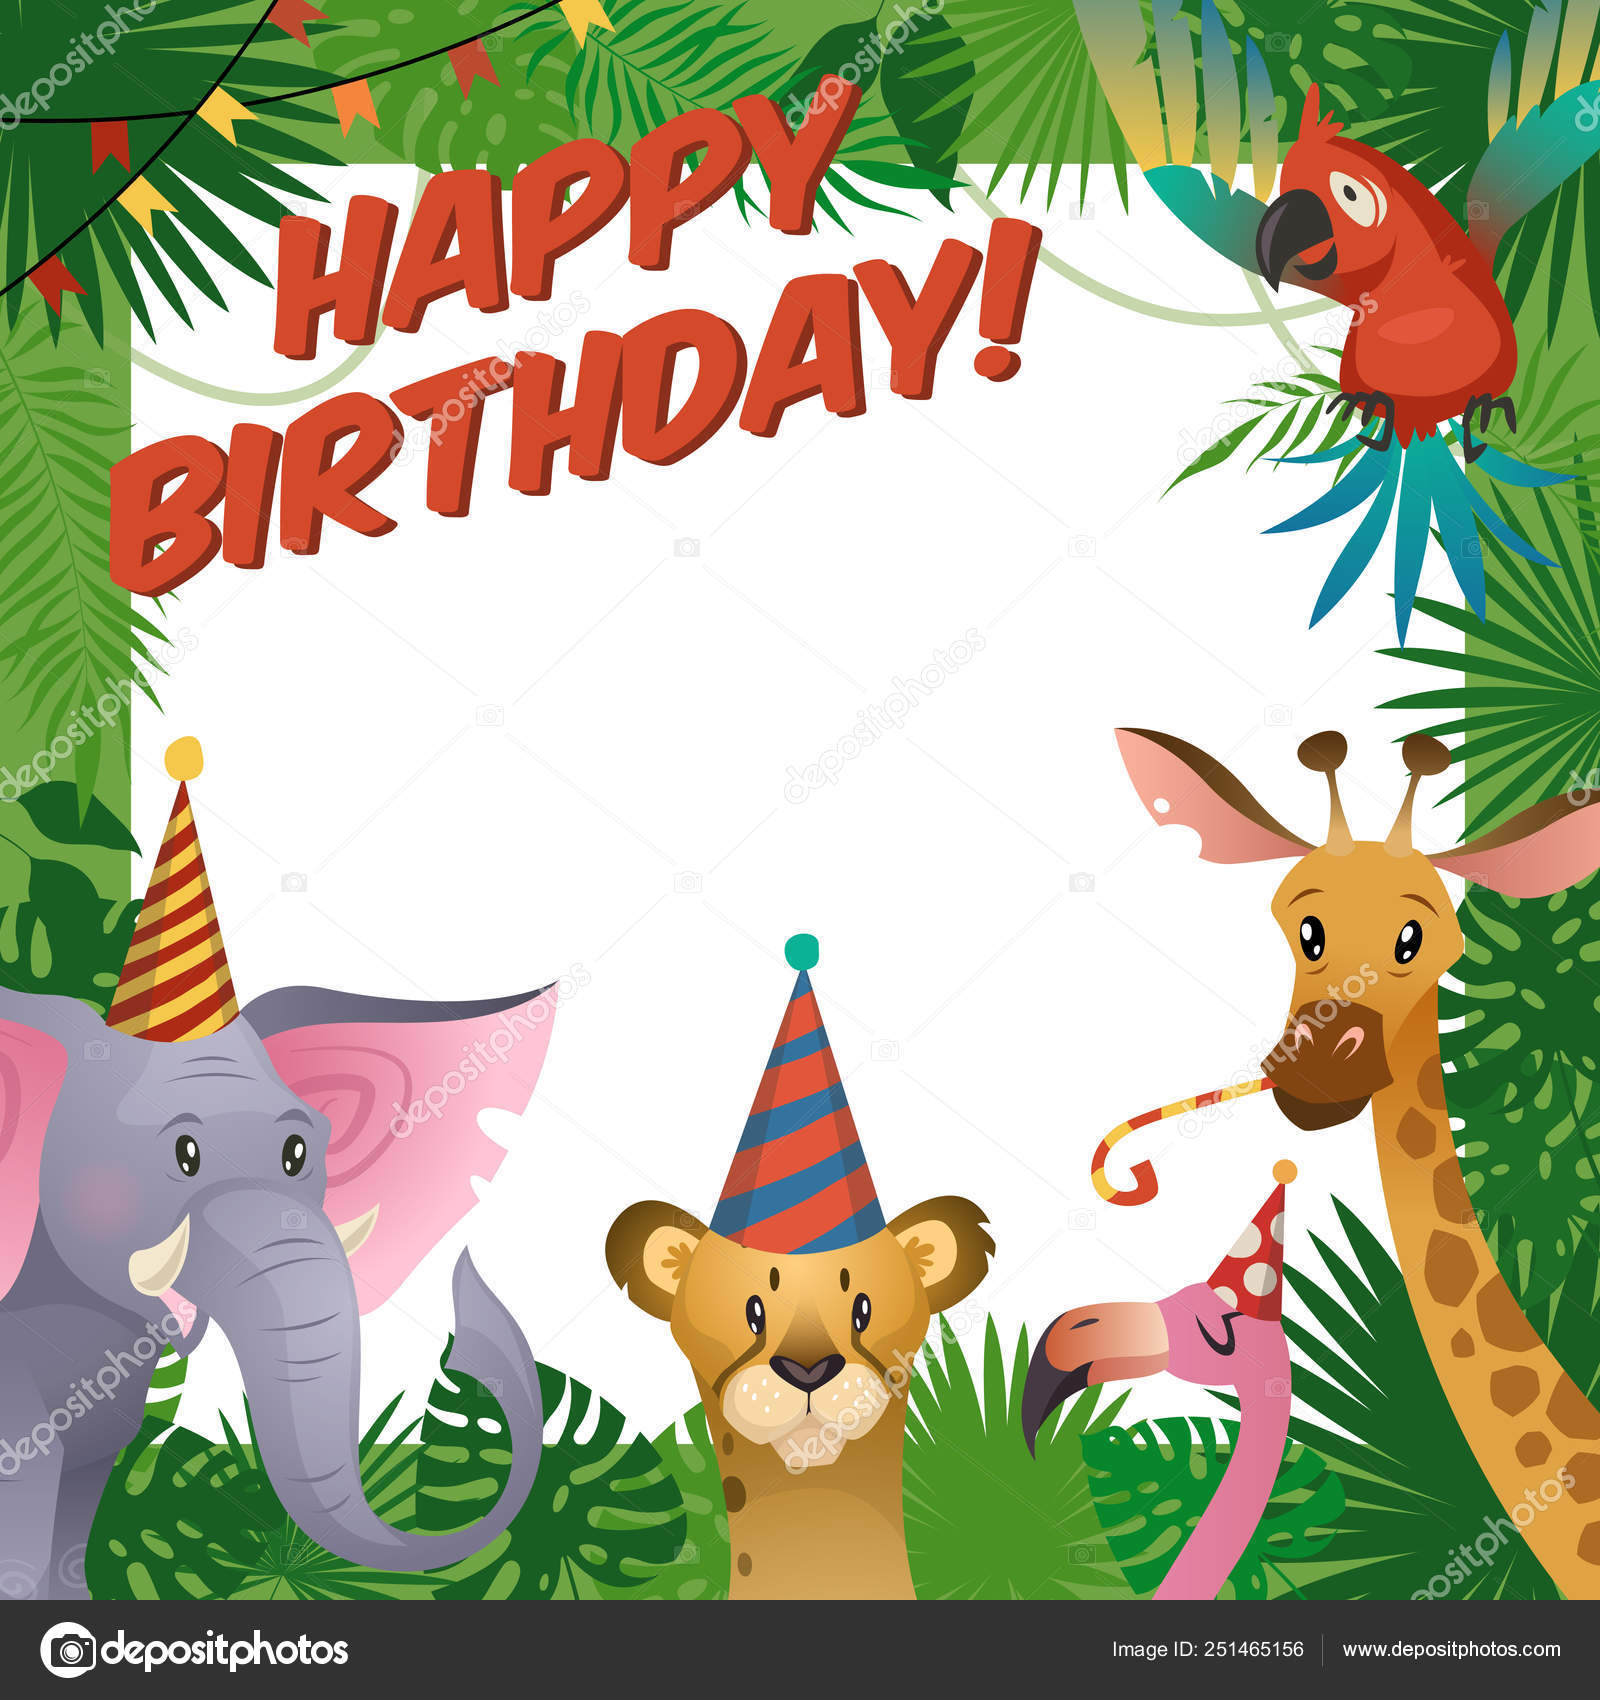 This is a graphic of Printable Jungle Animals with regard to alphabet